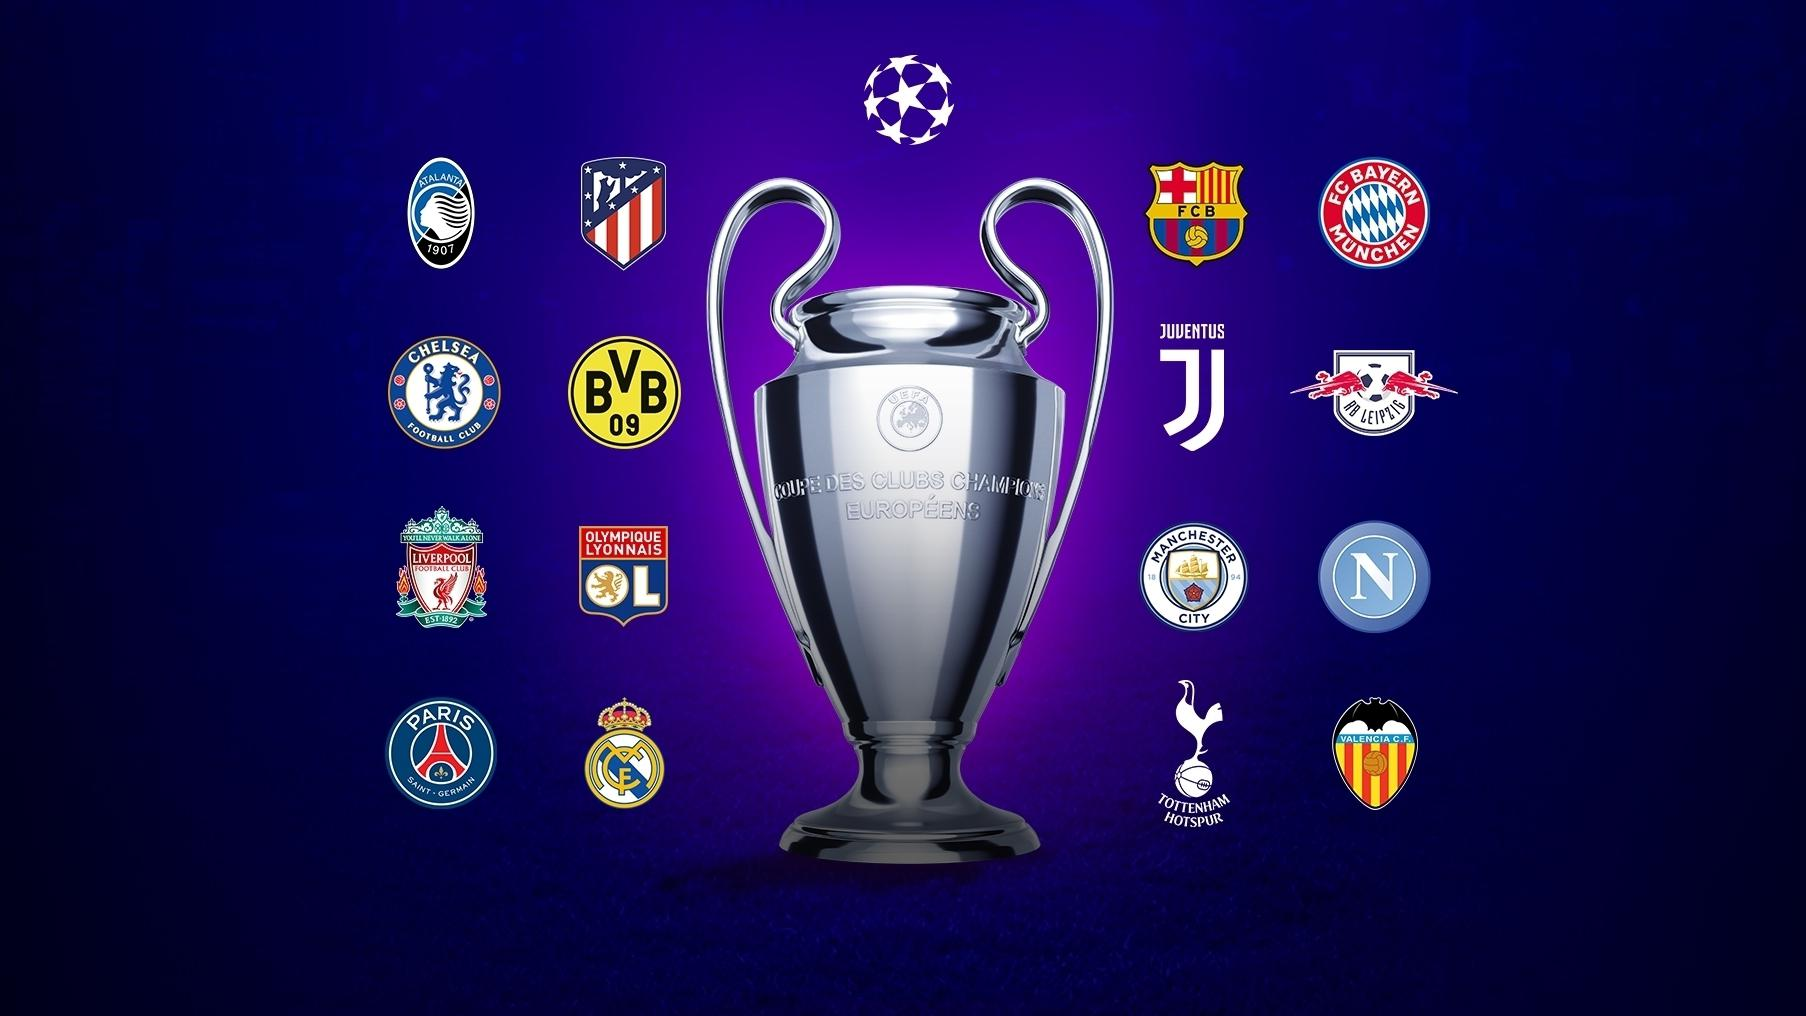 champions league round of 16 ties meet your opponents uefa champions league uefa com champions league round of 16 ties meet